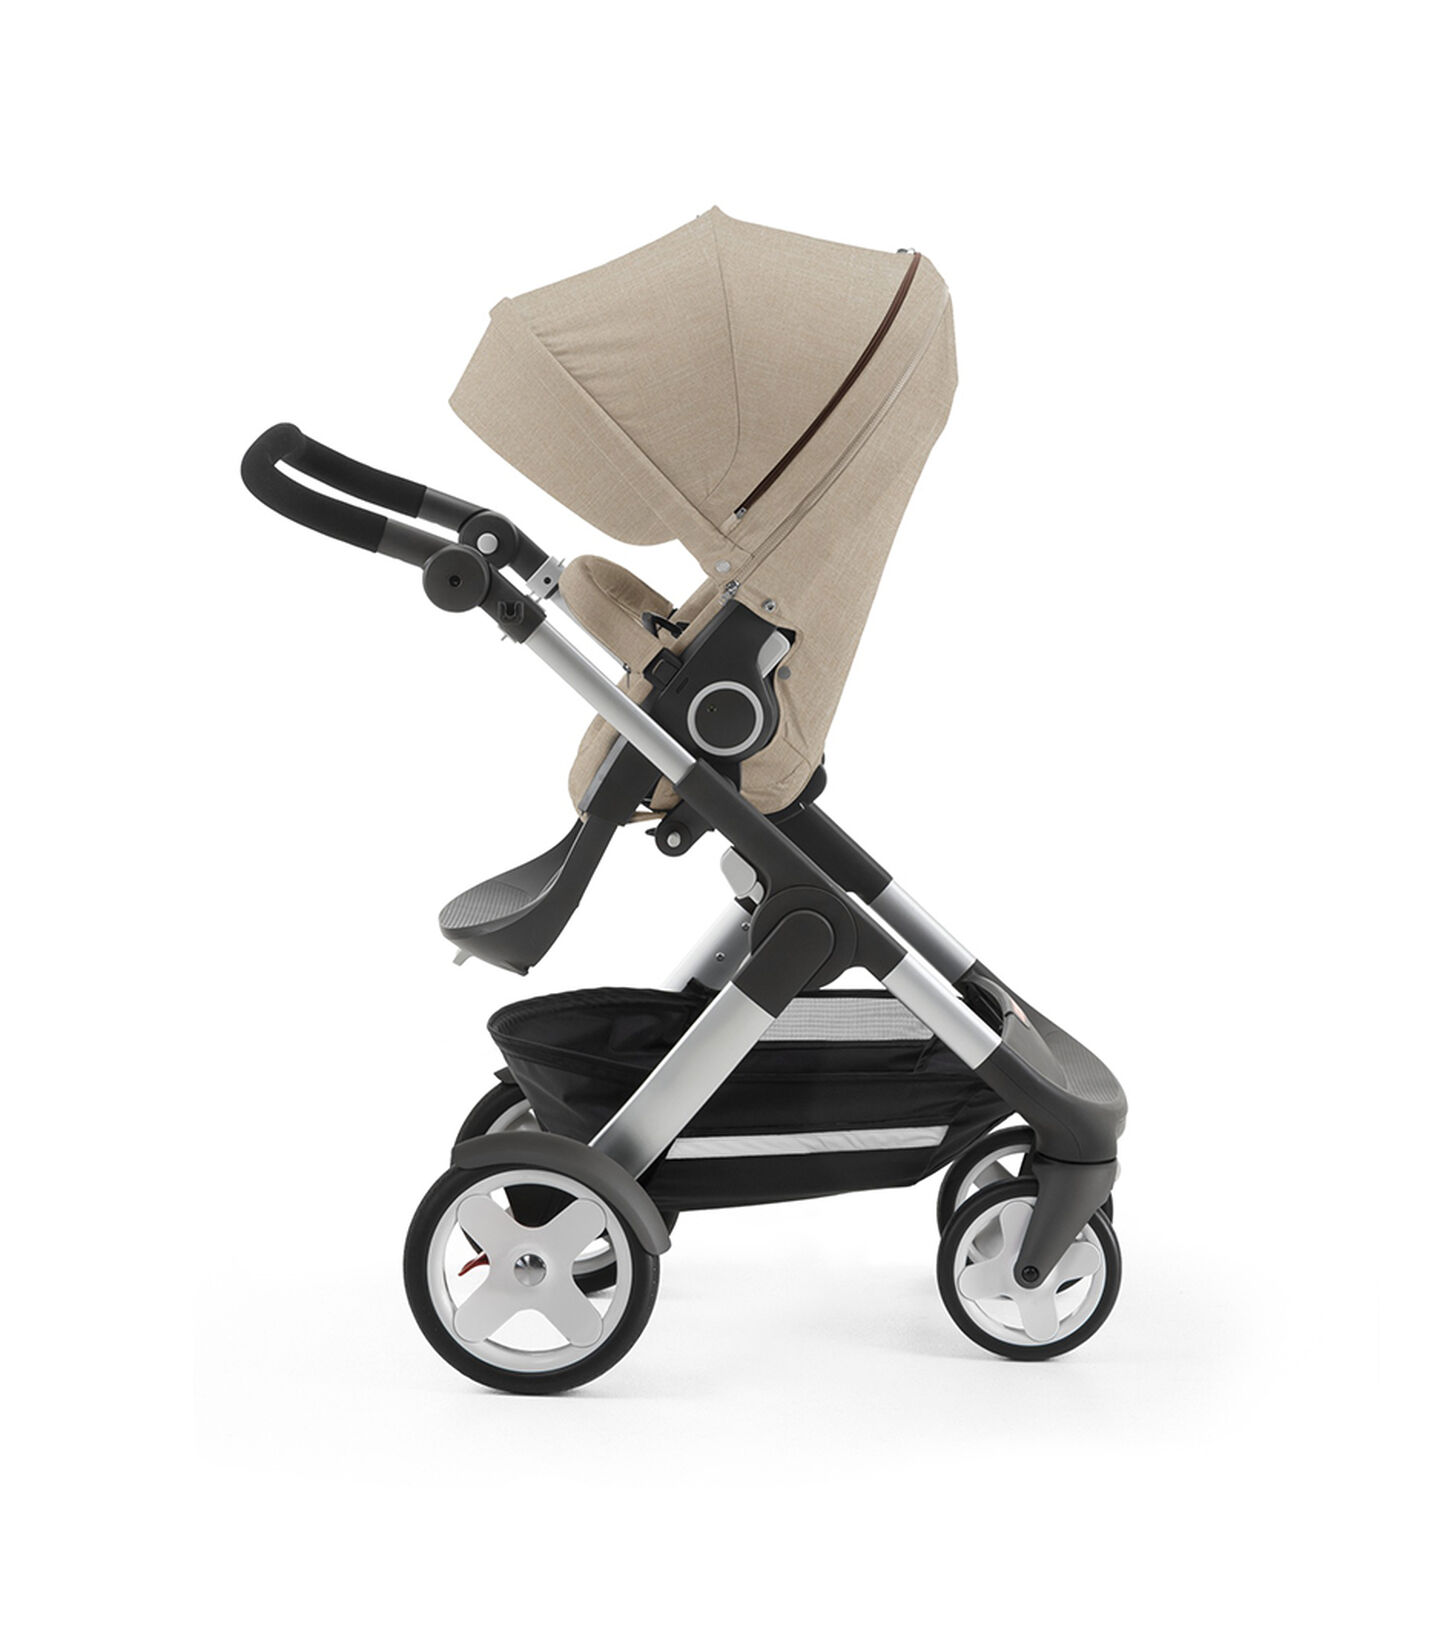 Stokke® Trailz with Stokke® Stroller Seat, parent facing, rest position. Beige Melange.